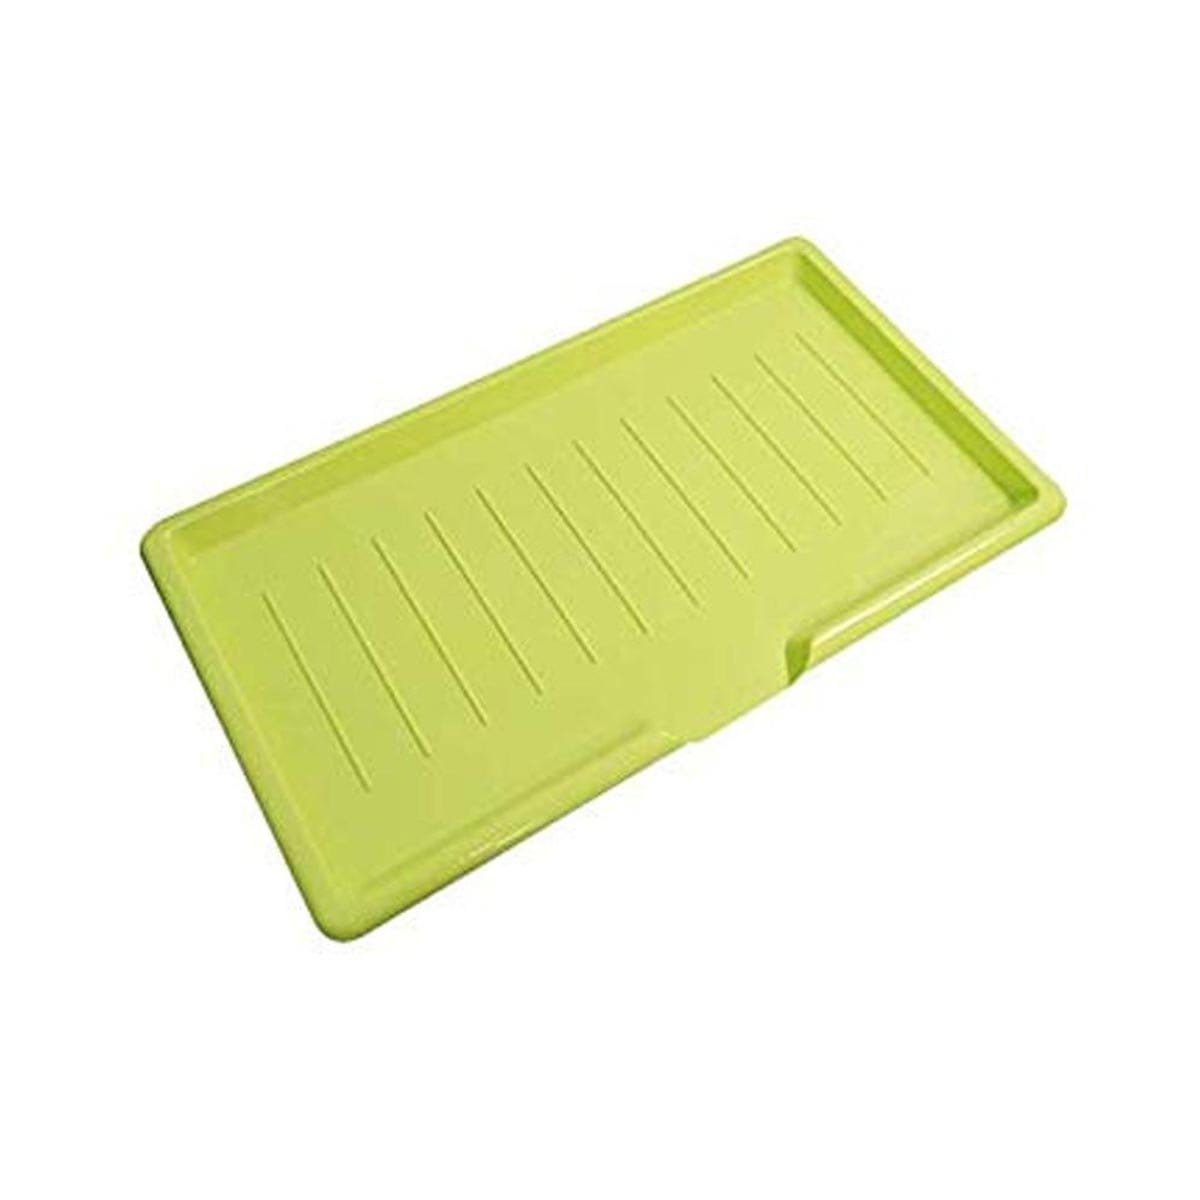 Japanese Plastic Drainage Tray For Sink Green